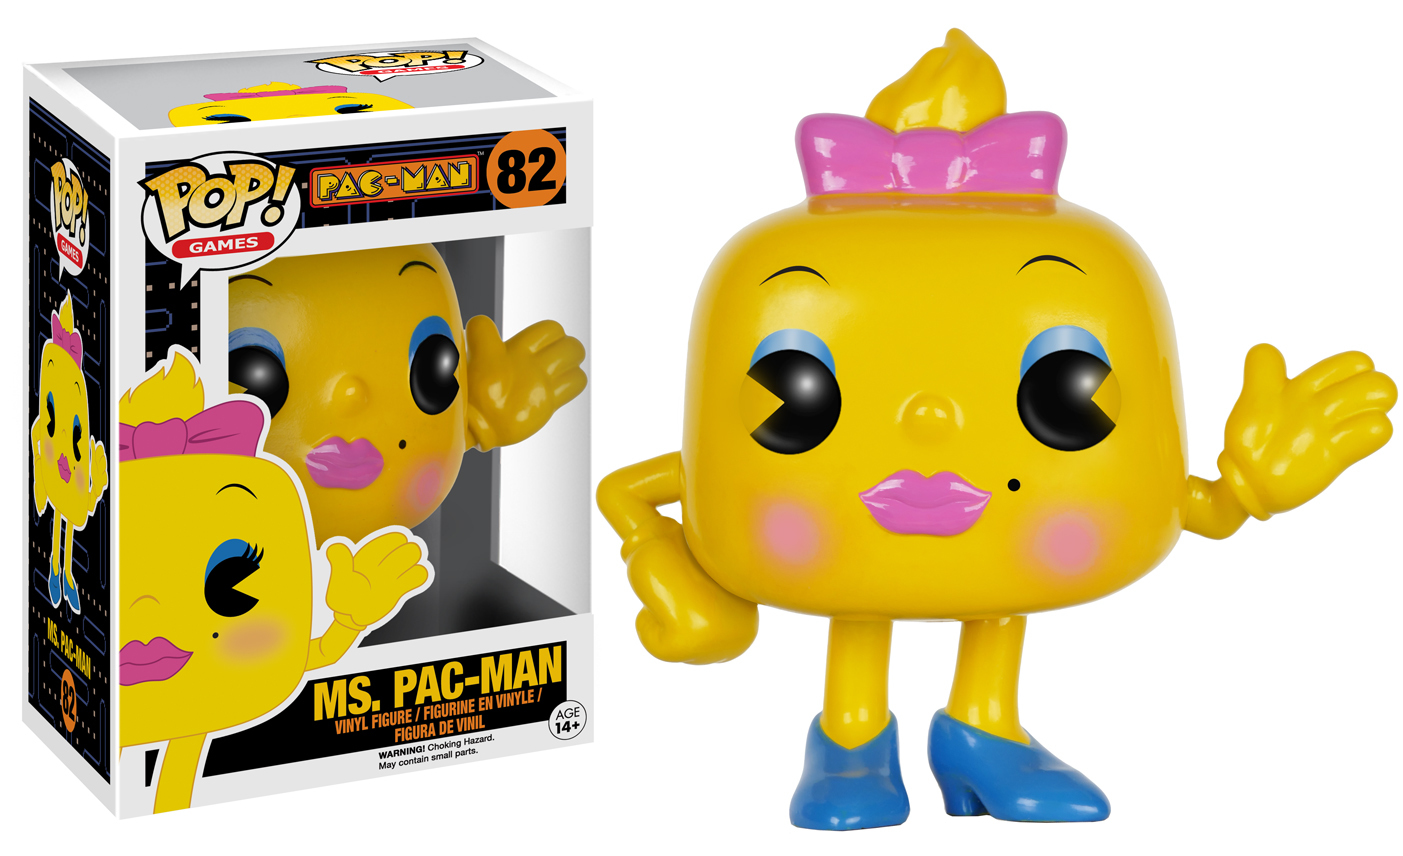 Pac-Man - Ms. Pac-Man Pop! Vinyl Figure image